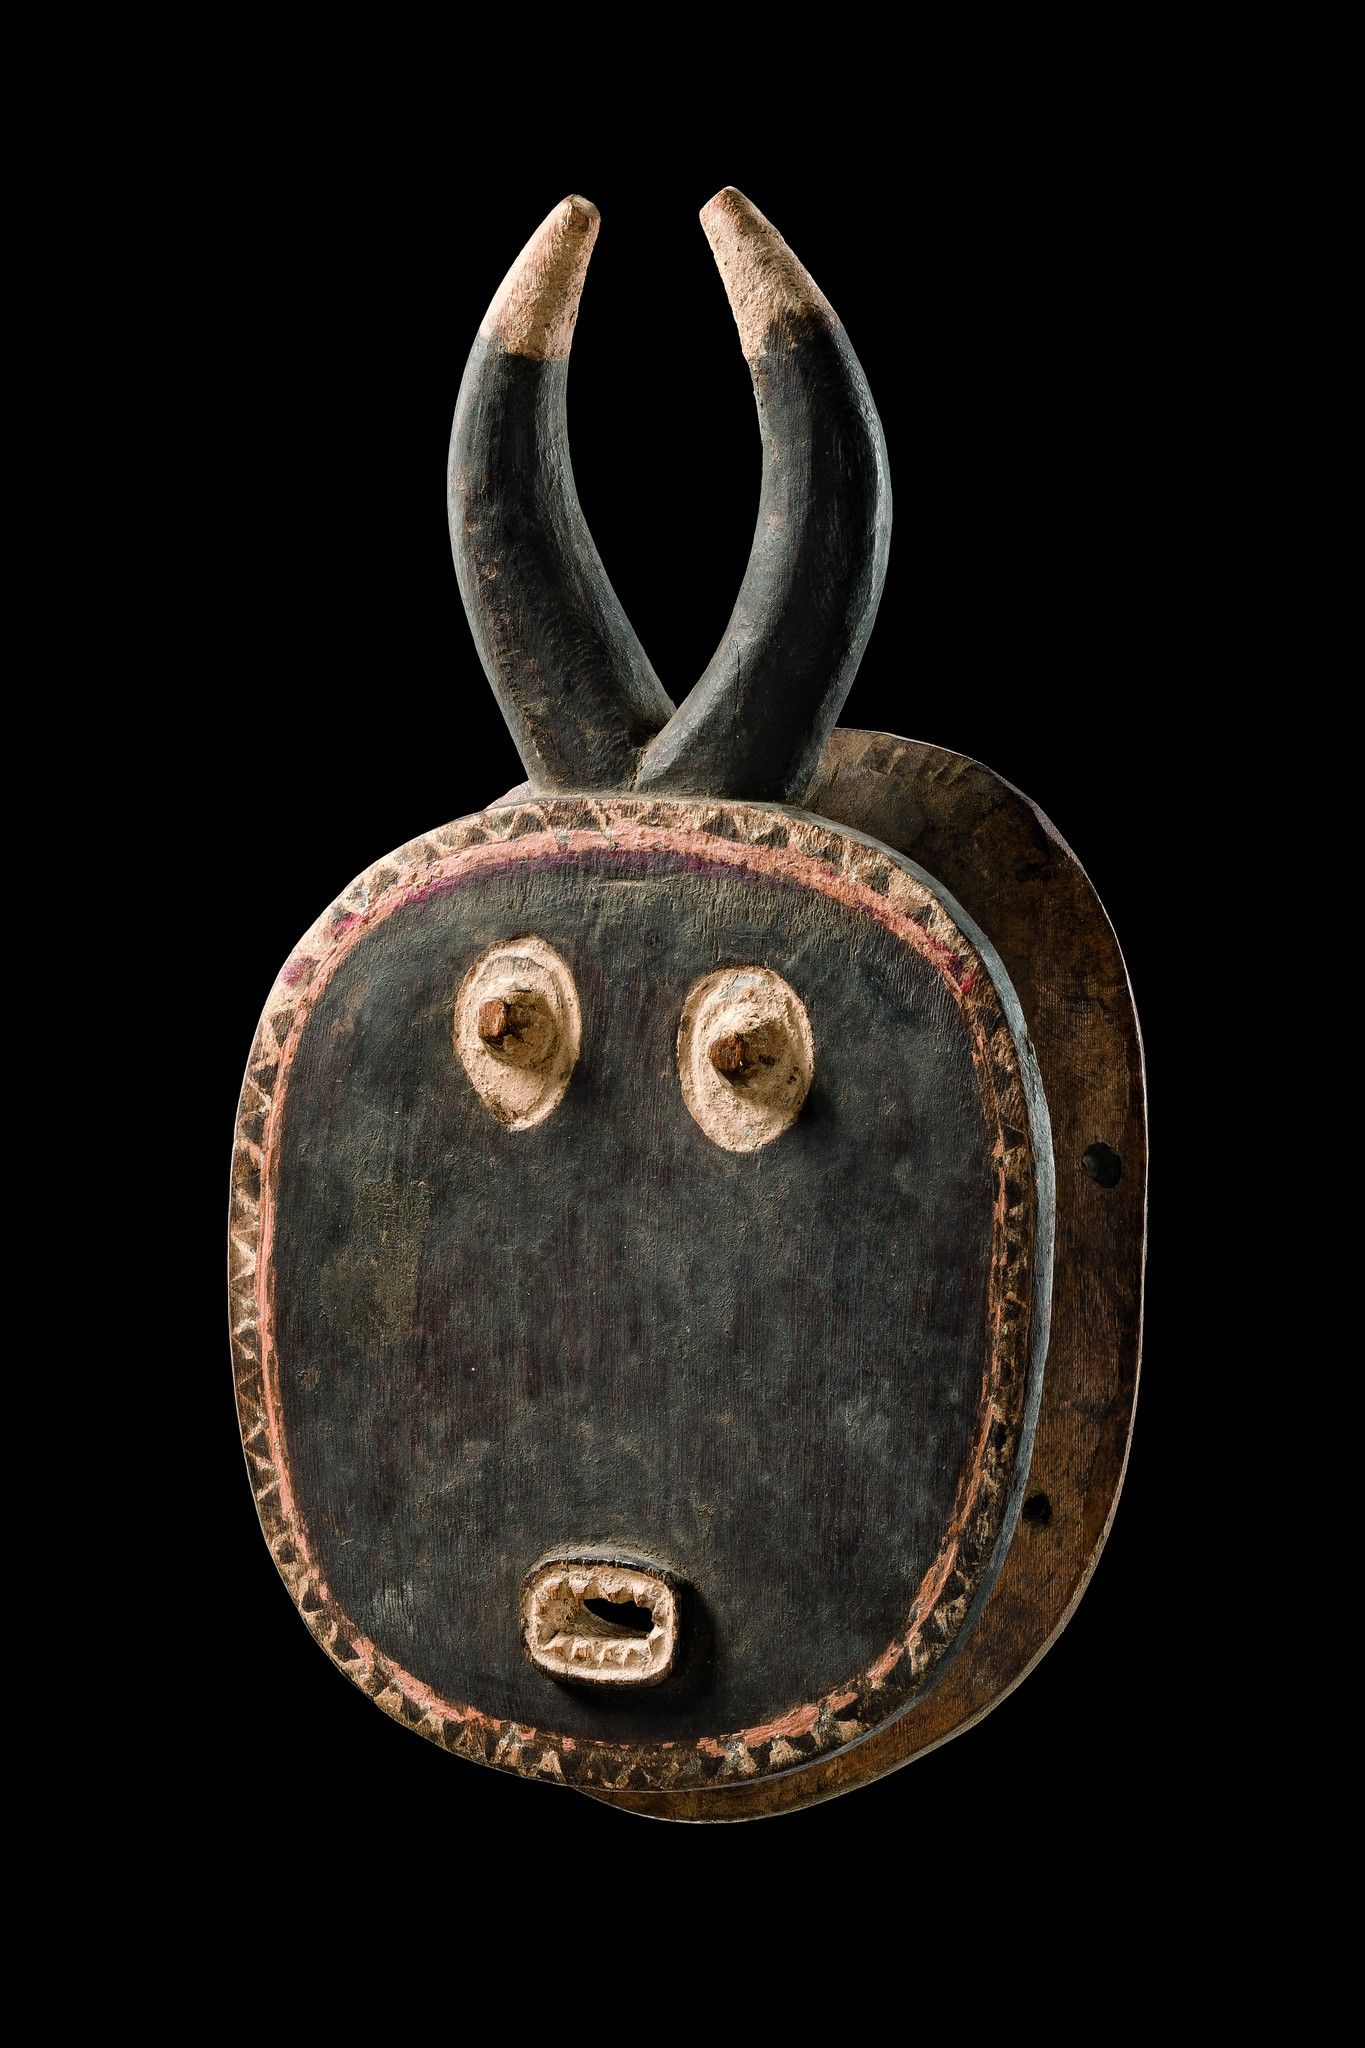 Africa   'Goli' mask from the Baule people of the Ivory Coast   Wood and pigment